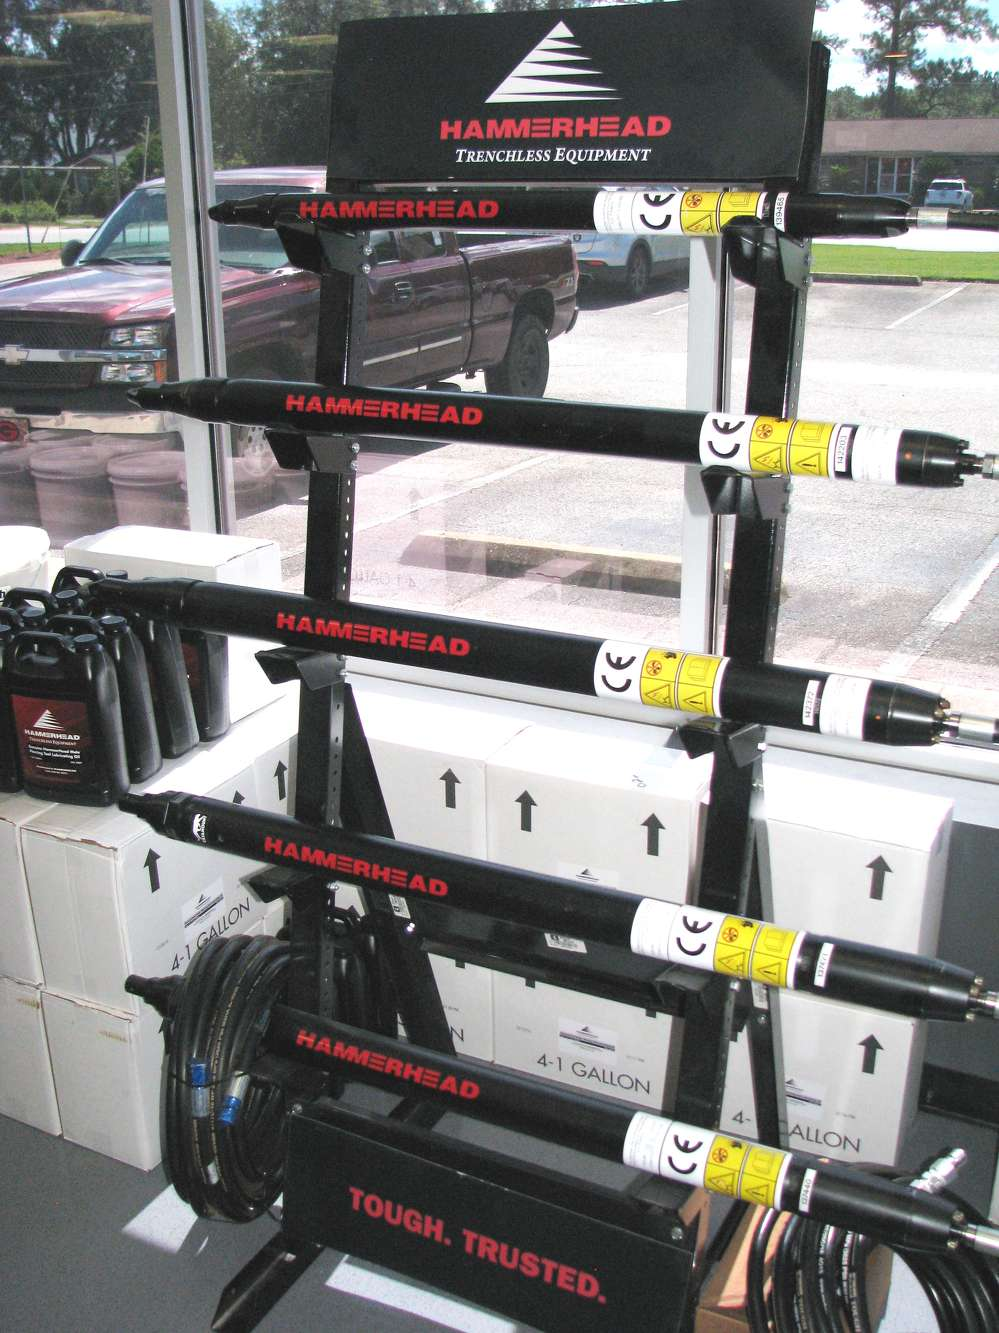 The new showroom layout provides plenty of room for manufacturer displays of products including Ditch Witch of Georgia's Hammerhead trenchless equipment products.